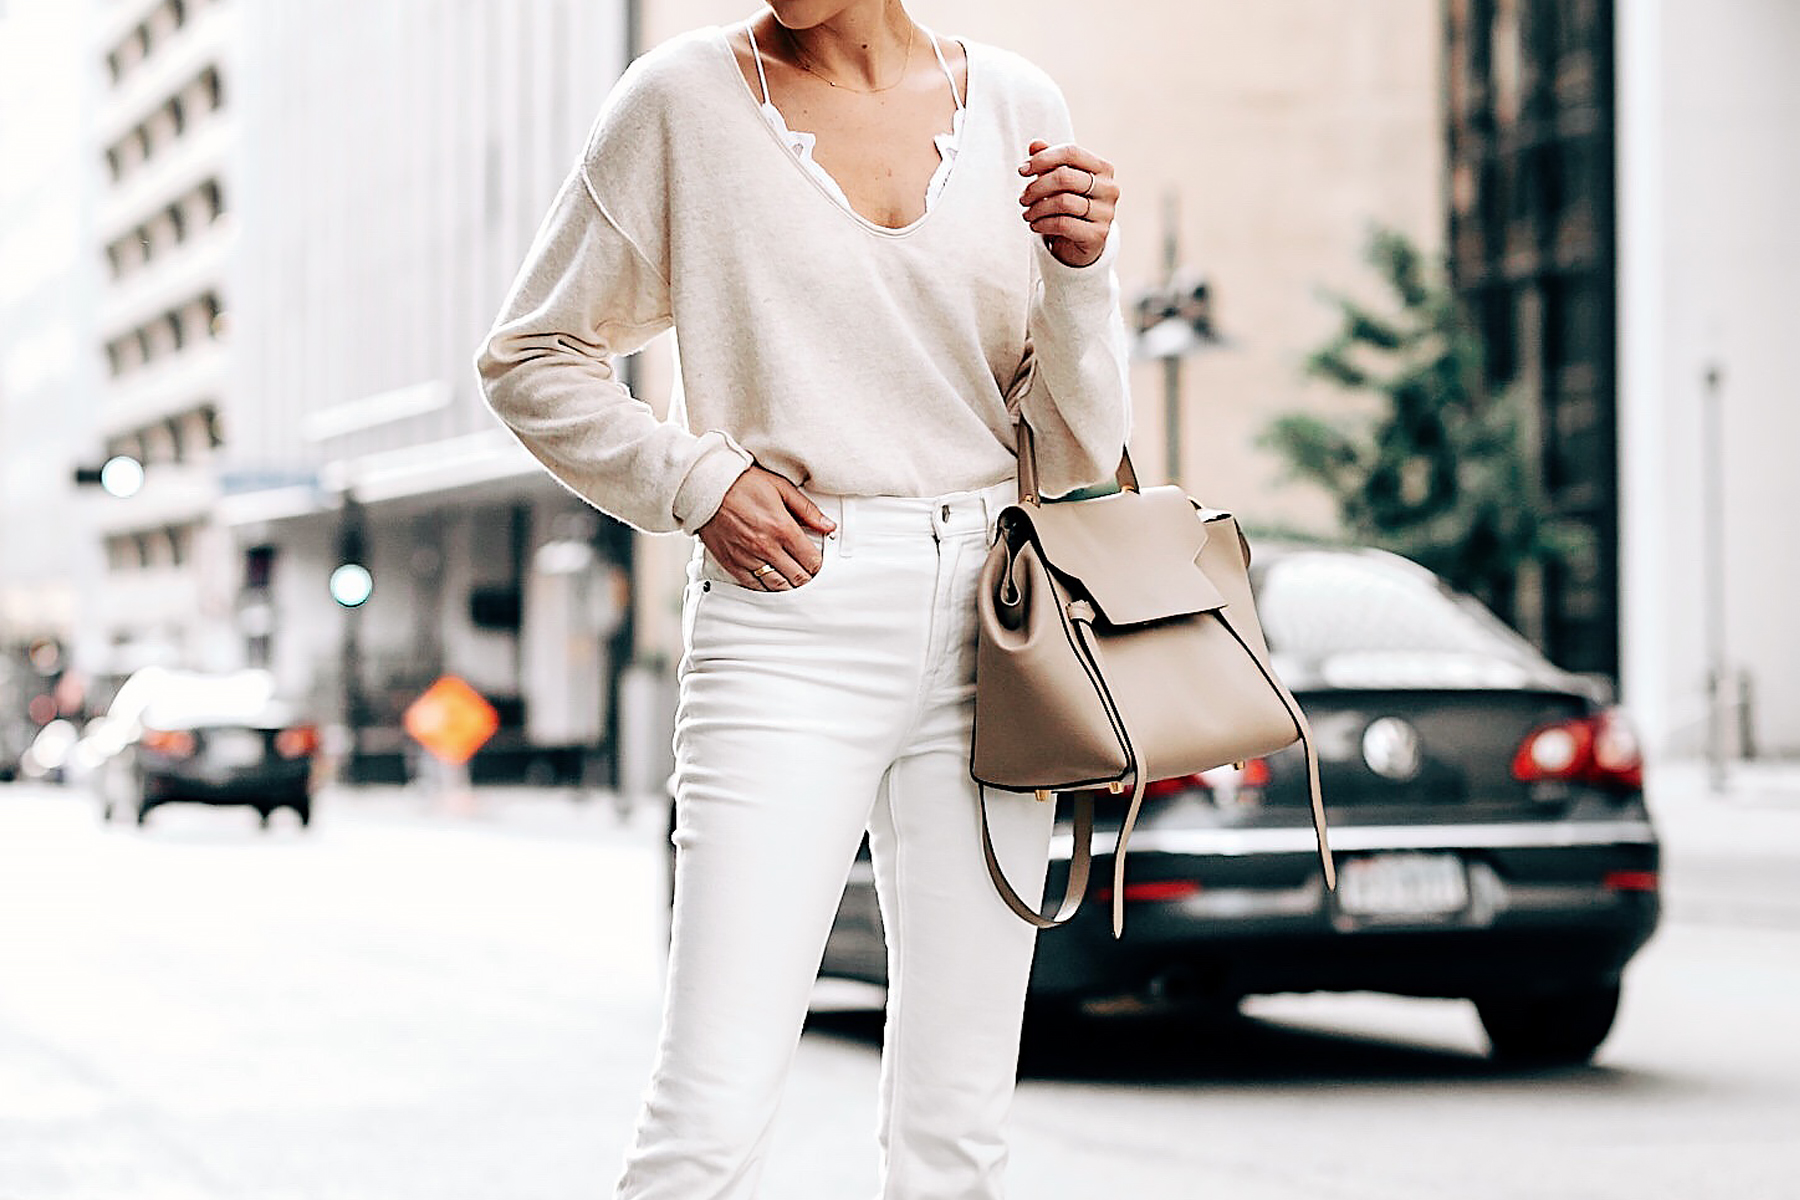 Woman Wearing Free People Ivory Cashmere Sweater White Lace Bralette Everlane White Jeans Celine Mini Belt Bag Fashion Jackson San Diego Fashion Blogger Street Style